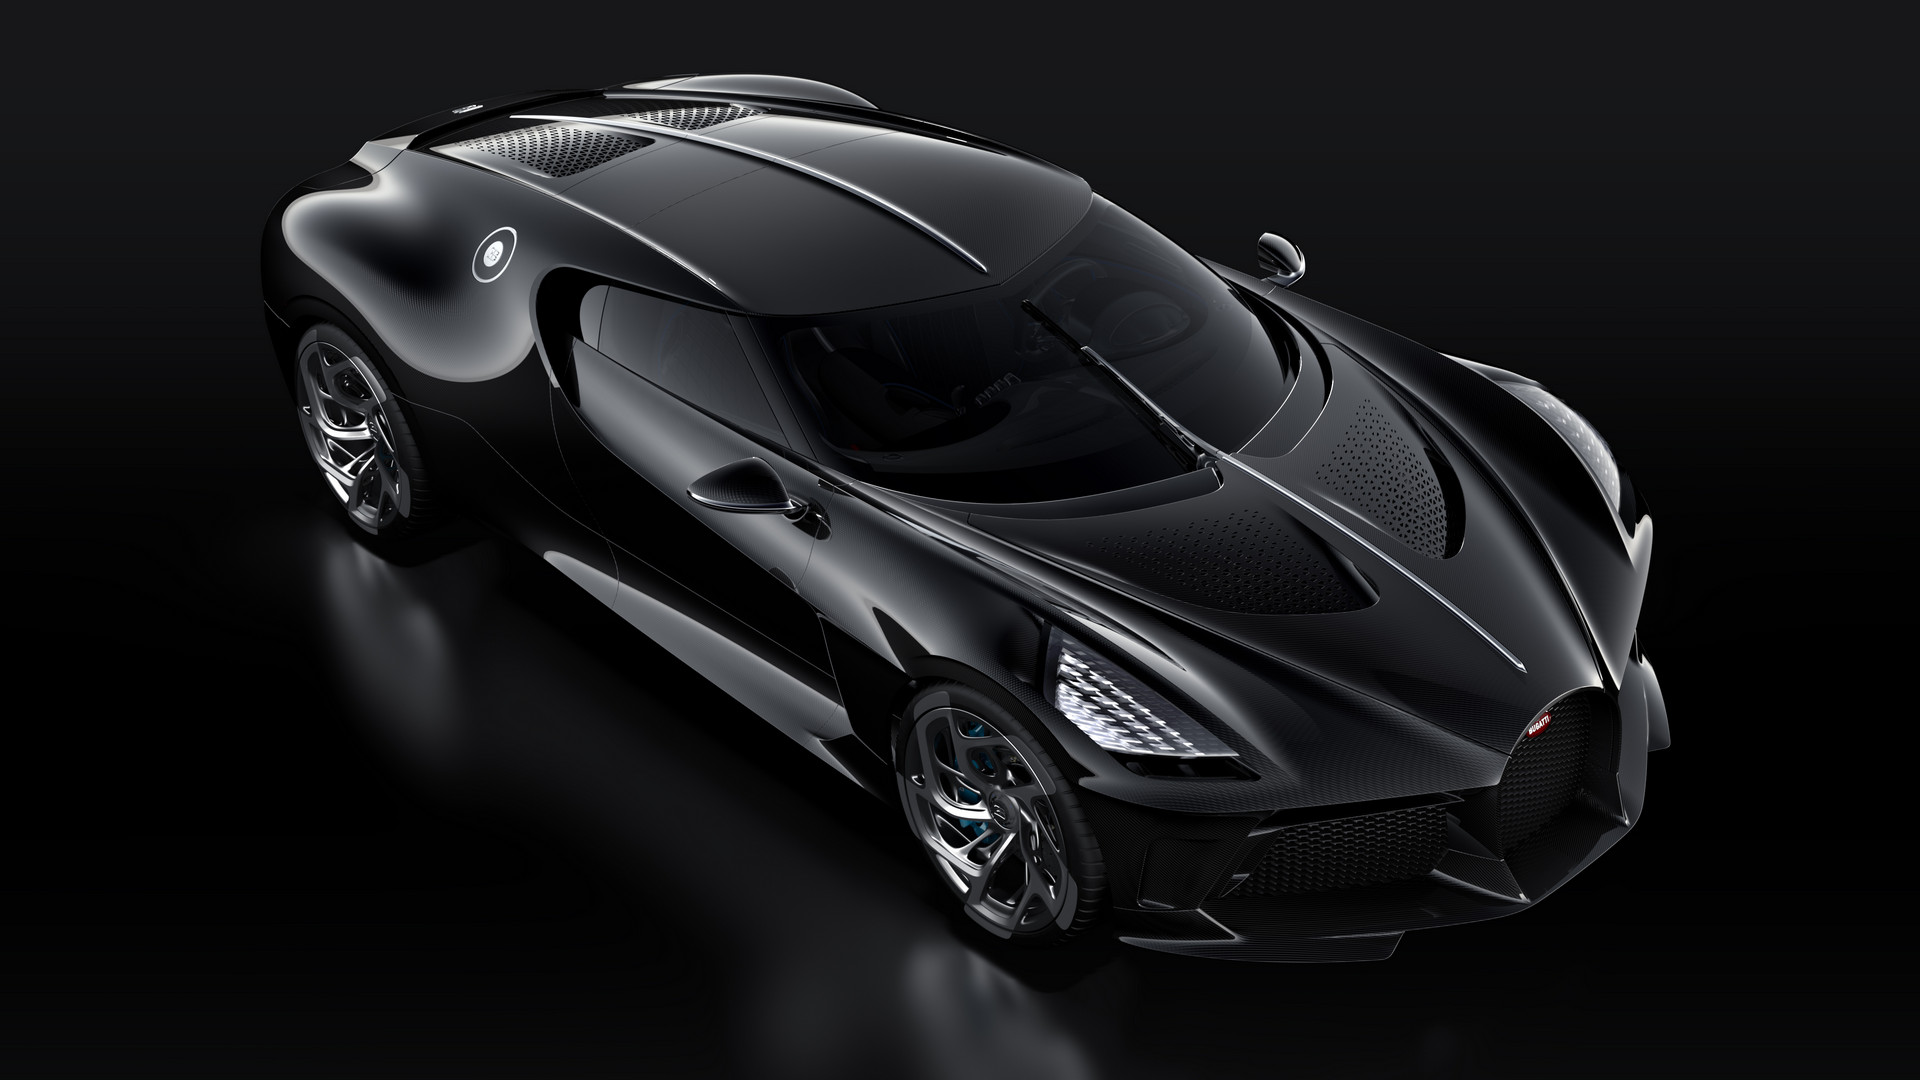 1 of 1 bugatti la voiture noire revealed with 11 000 000 price tag gtspirit. Black Bedroom Furniture Sets. Home Design Ideas